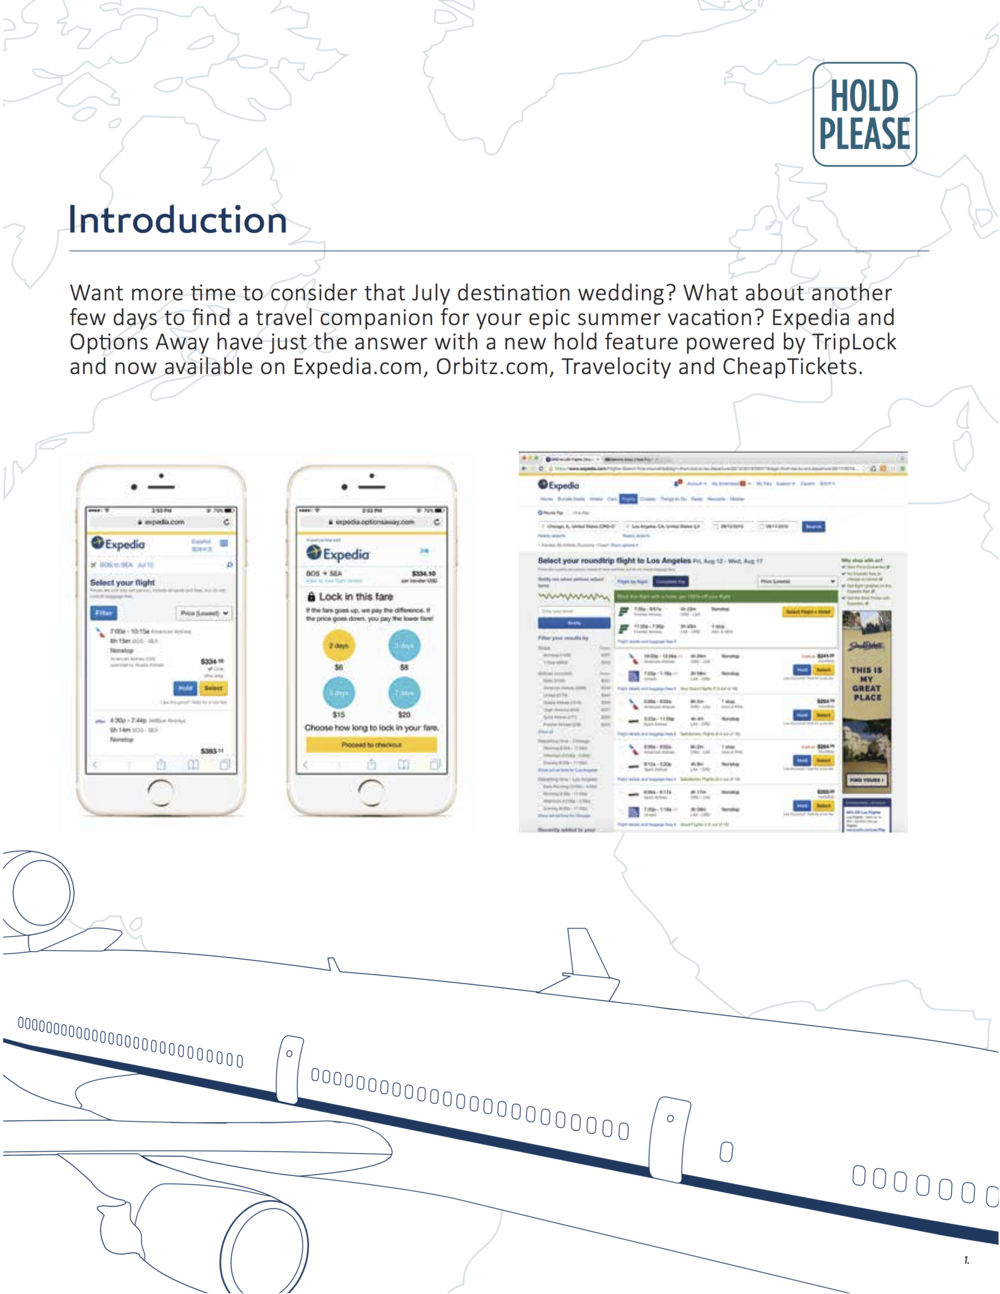 Options Away Expedia Case Study 1.png